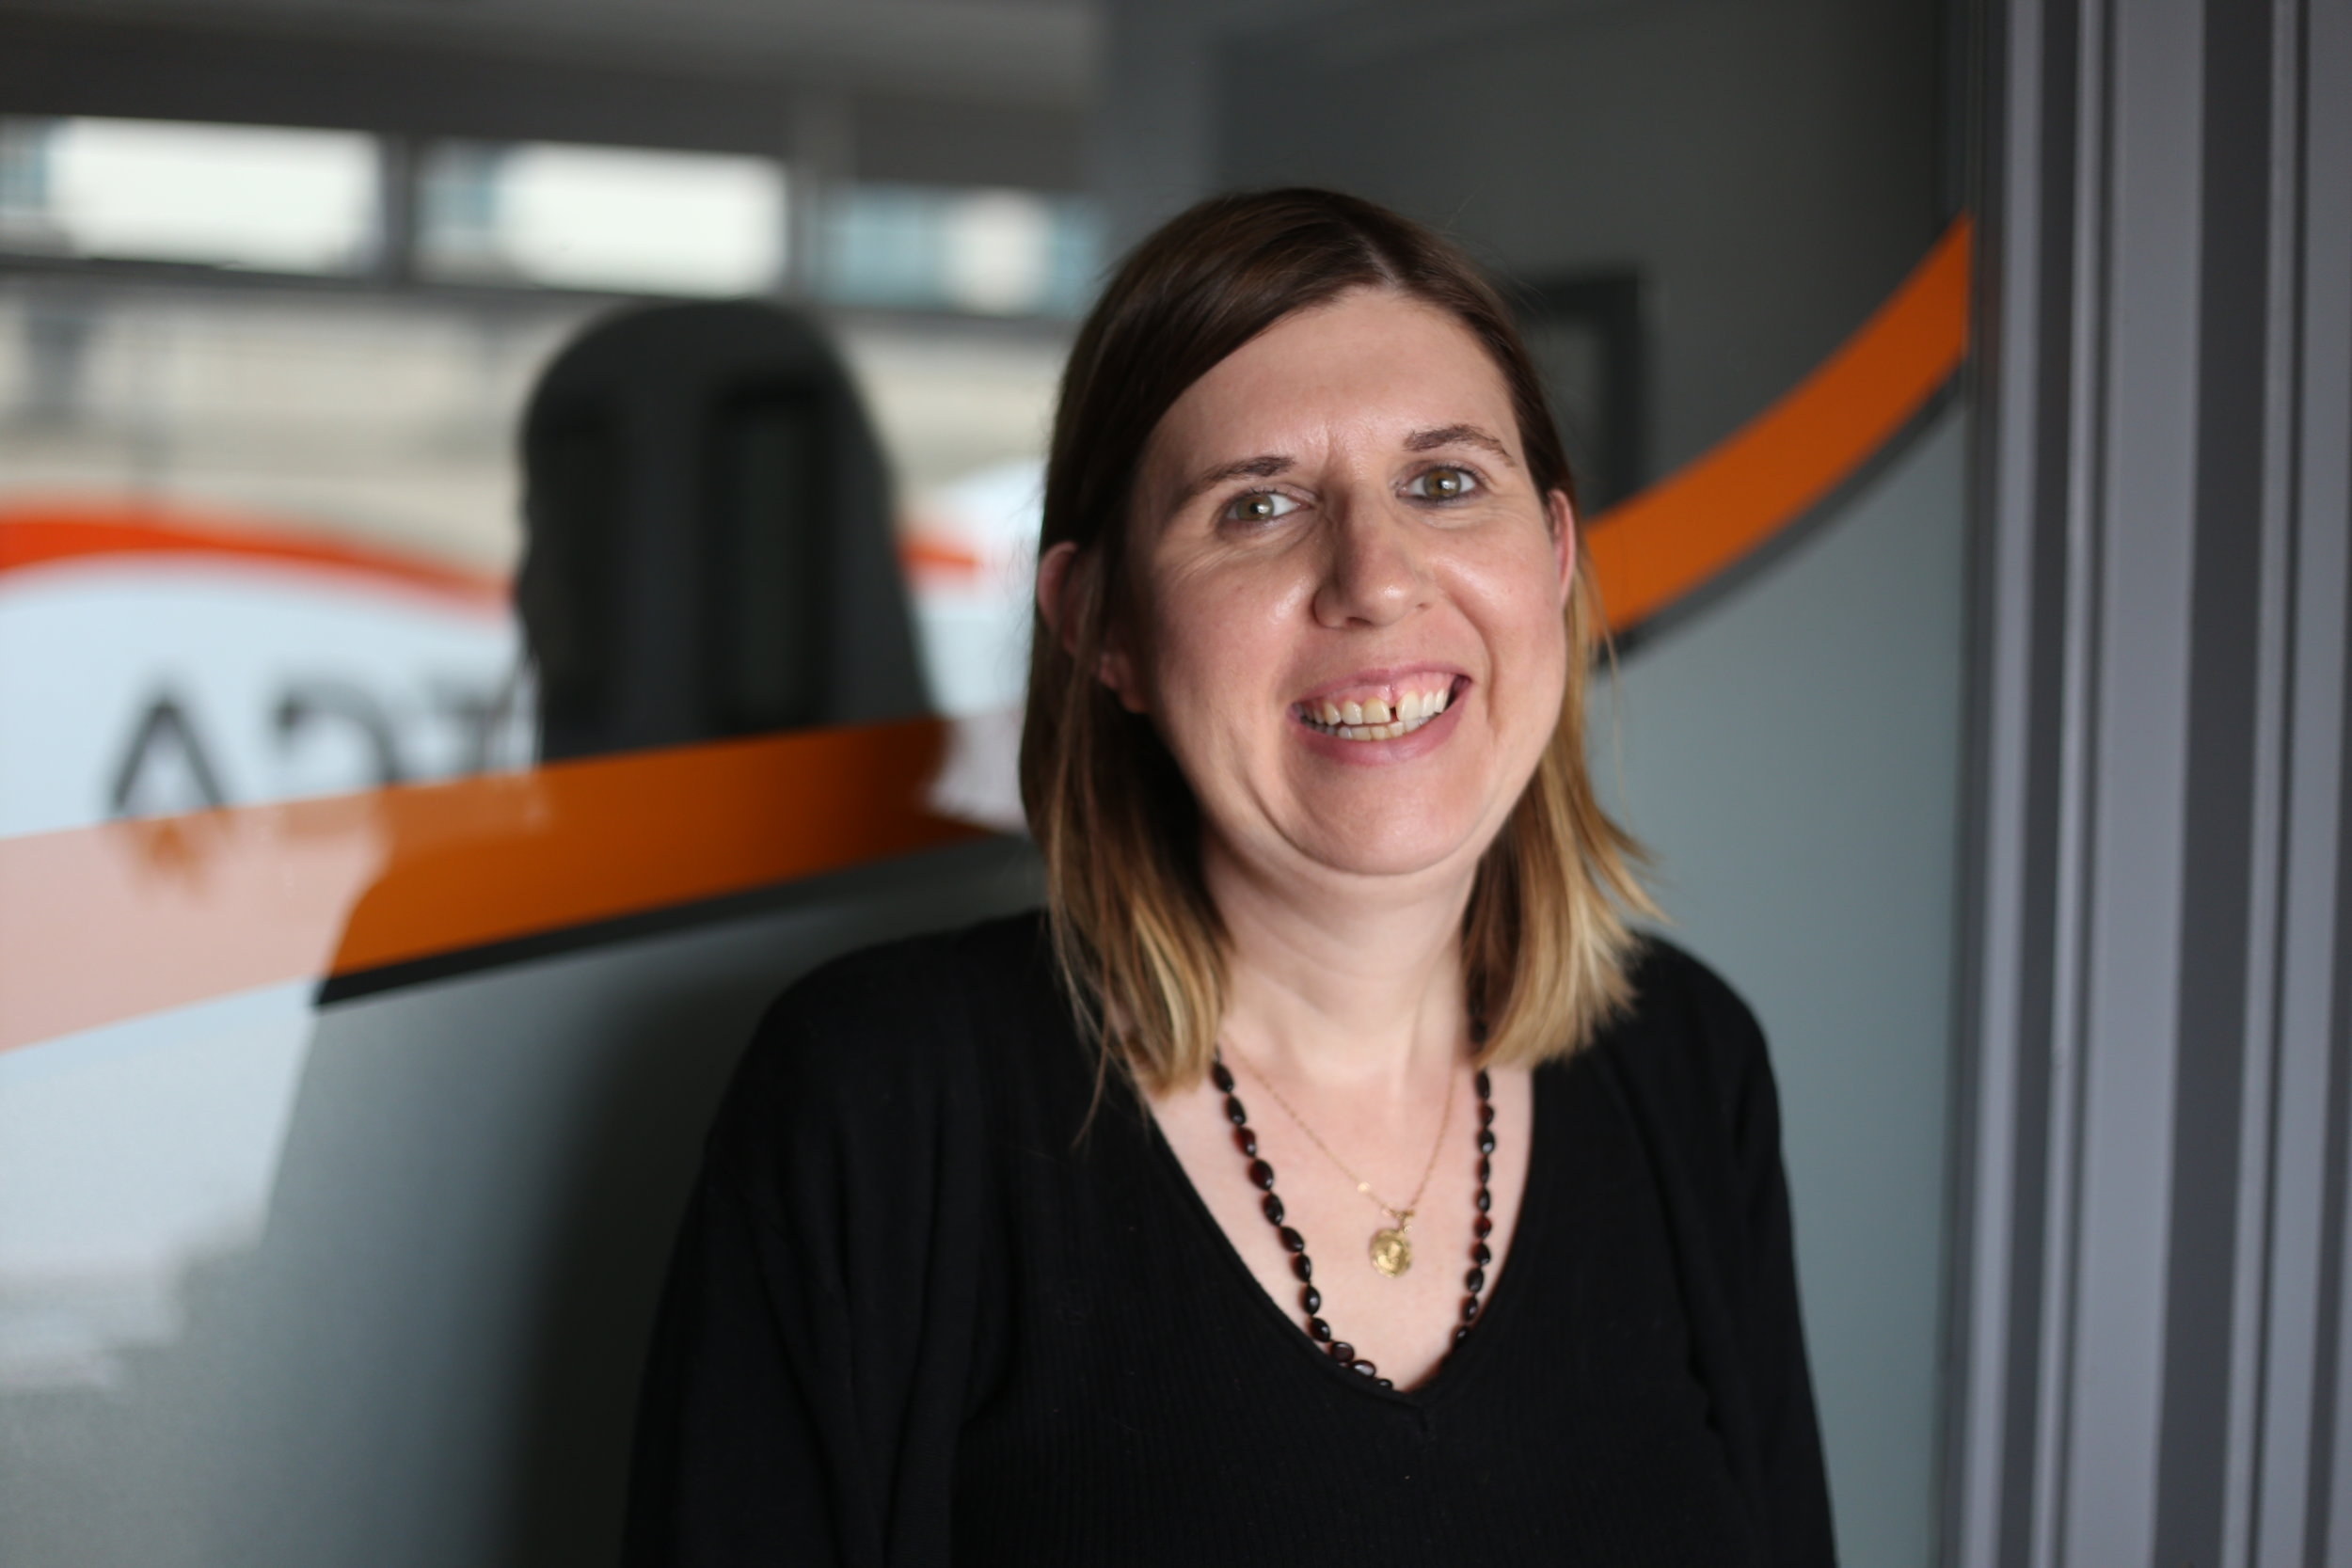 Lorraine Flanagan: Sales & Accounts   Lorraine Flanagan is based in our office in Mullingar. Lorraine has been working with us for four years now. Lorraine is always on hand to help out ADTA's customers. If you've ever phoned in, you've most likely dealt with her before!